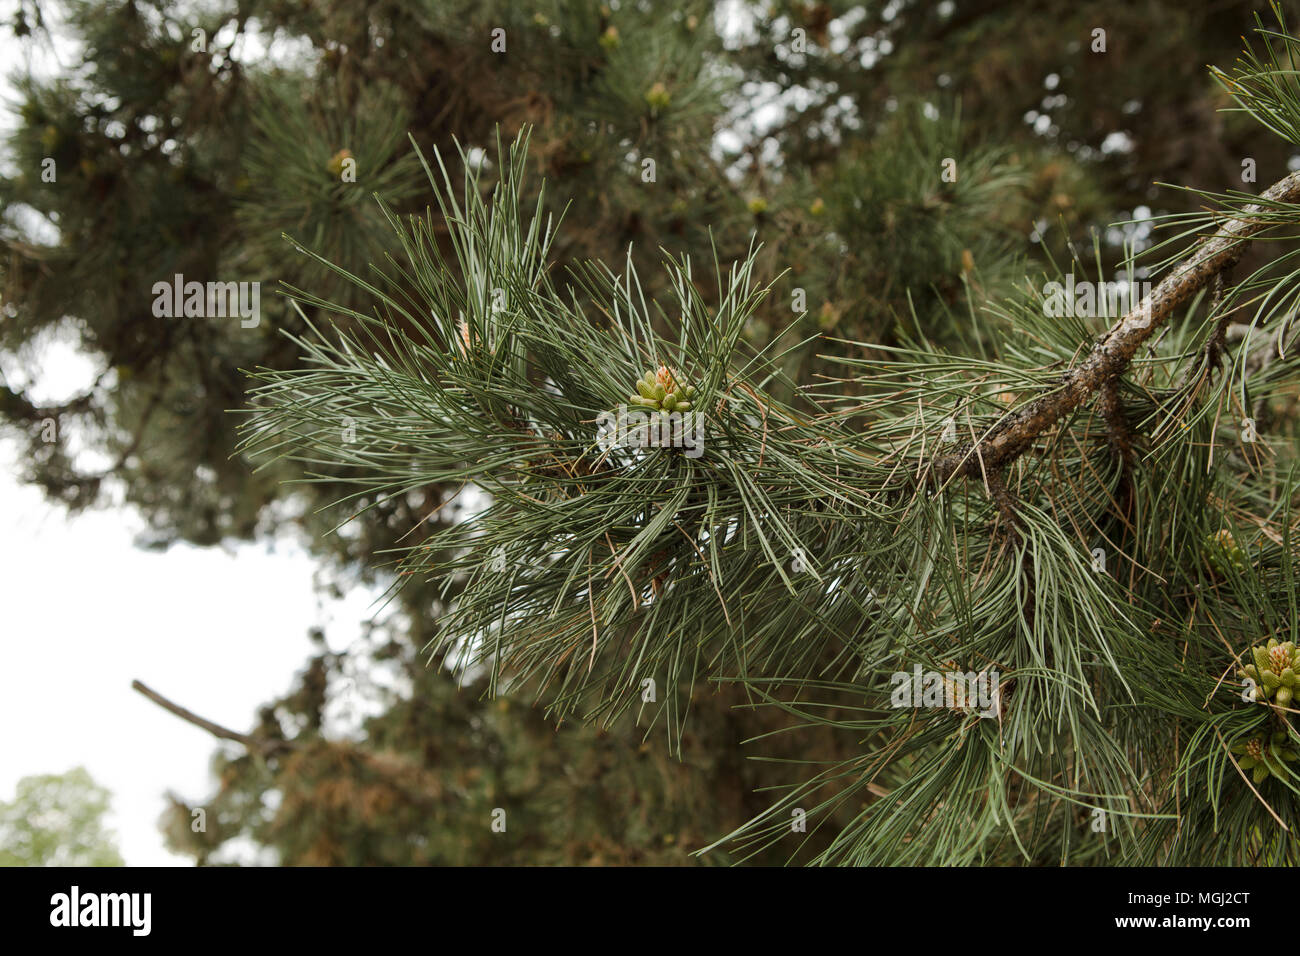 pine twig with little buds - Stock Image